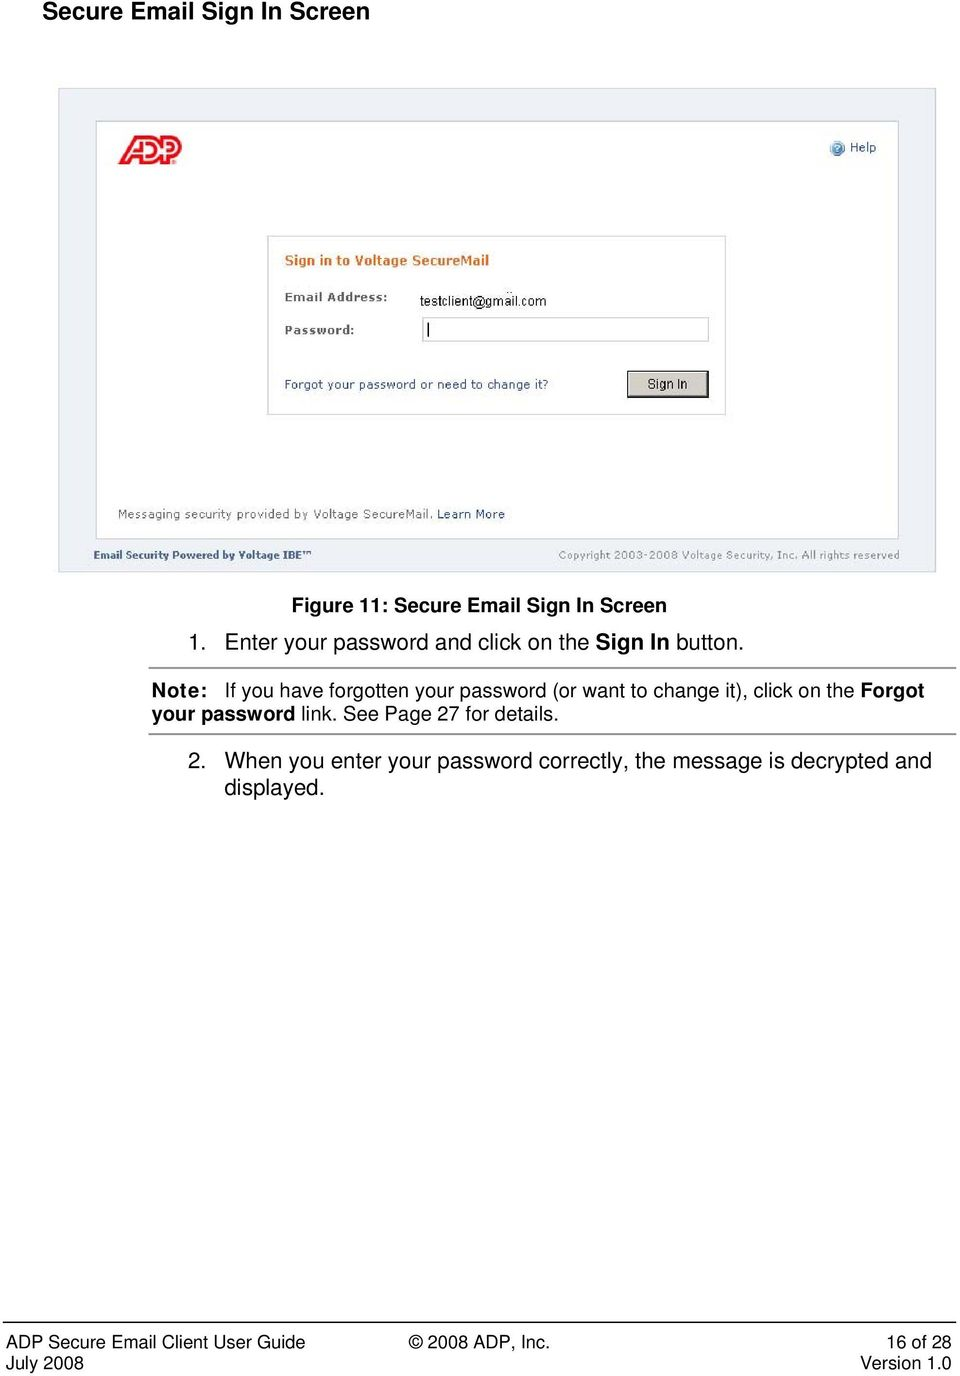 Note: If you have forgotten your password (or want to change it), click on the Forgot your